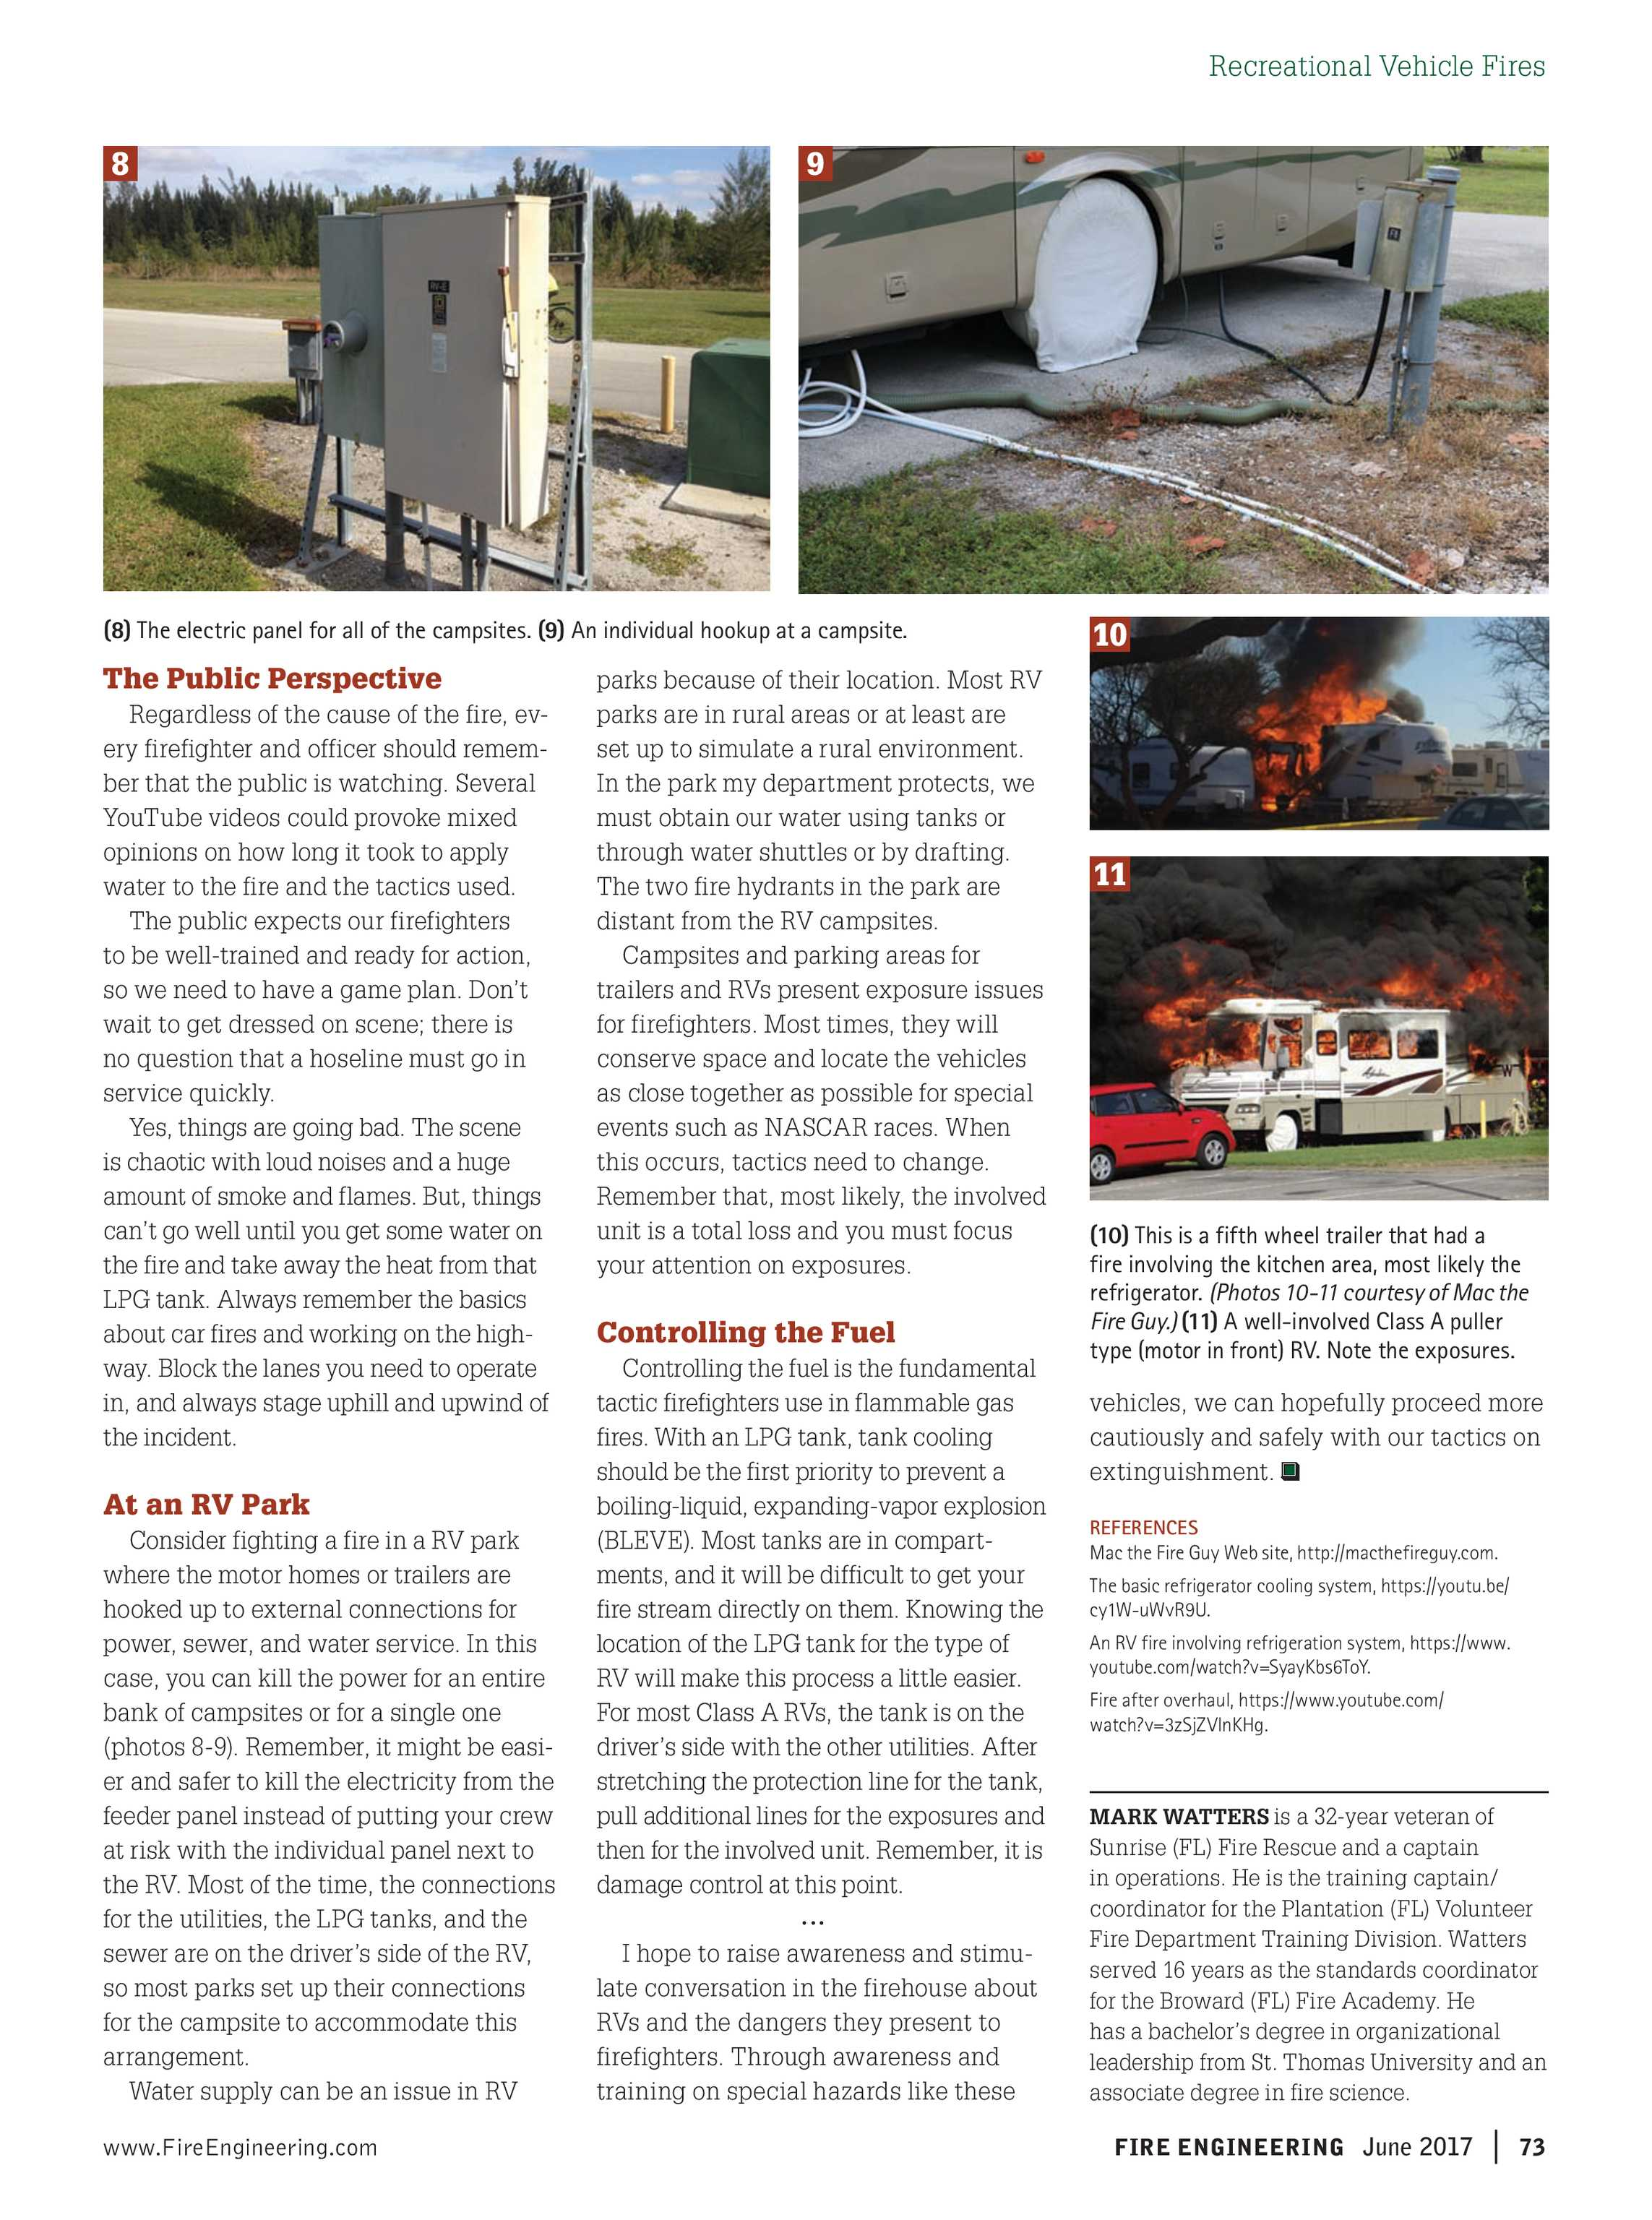 Fire Engineering - June 2017 - page 73